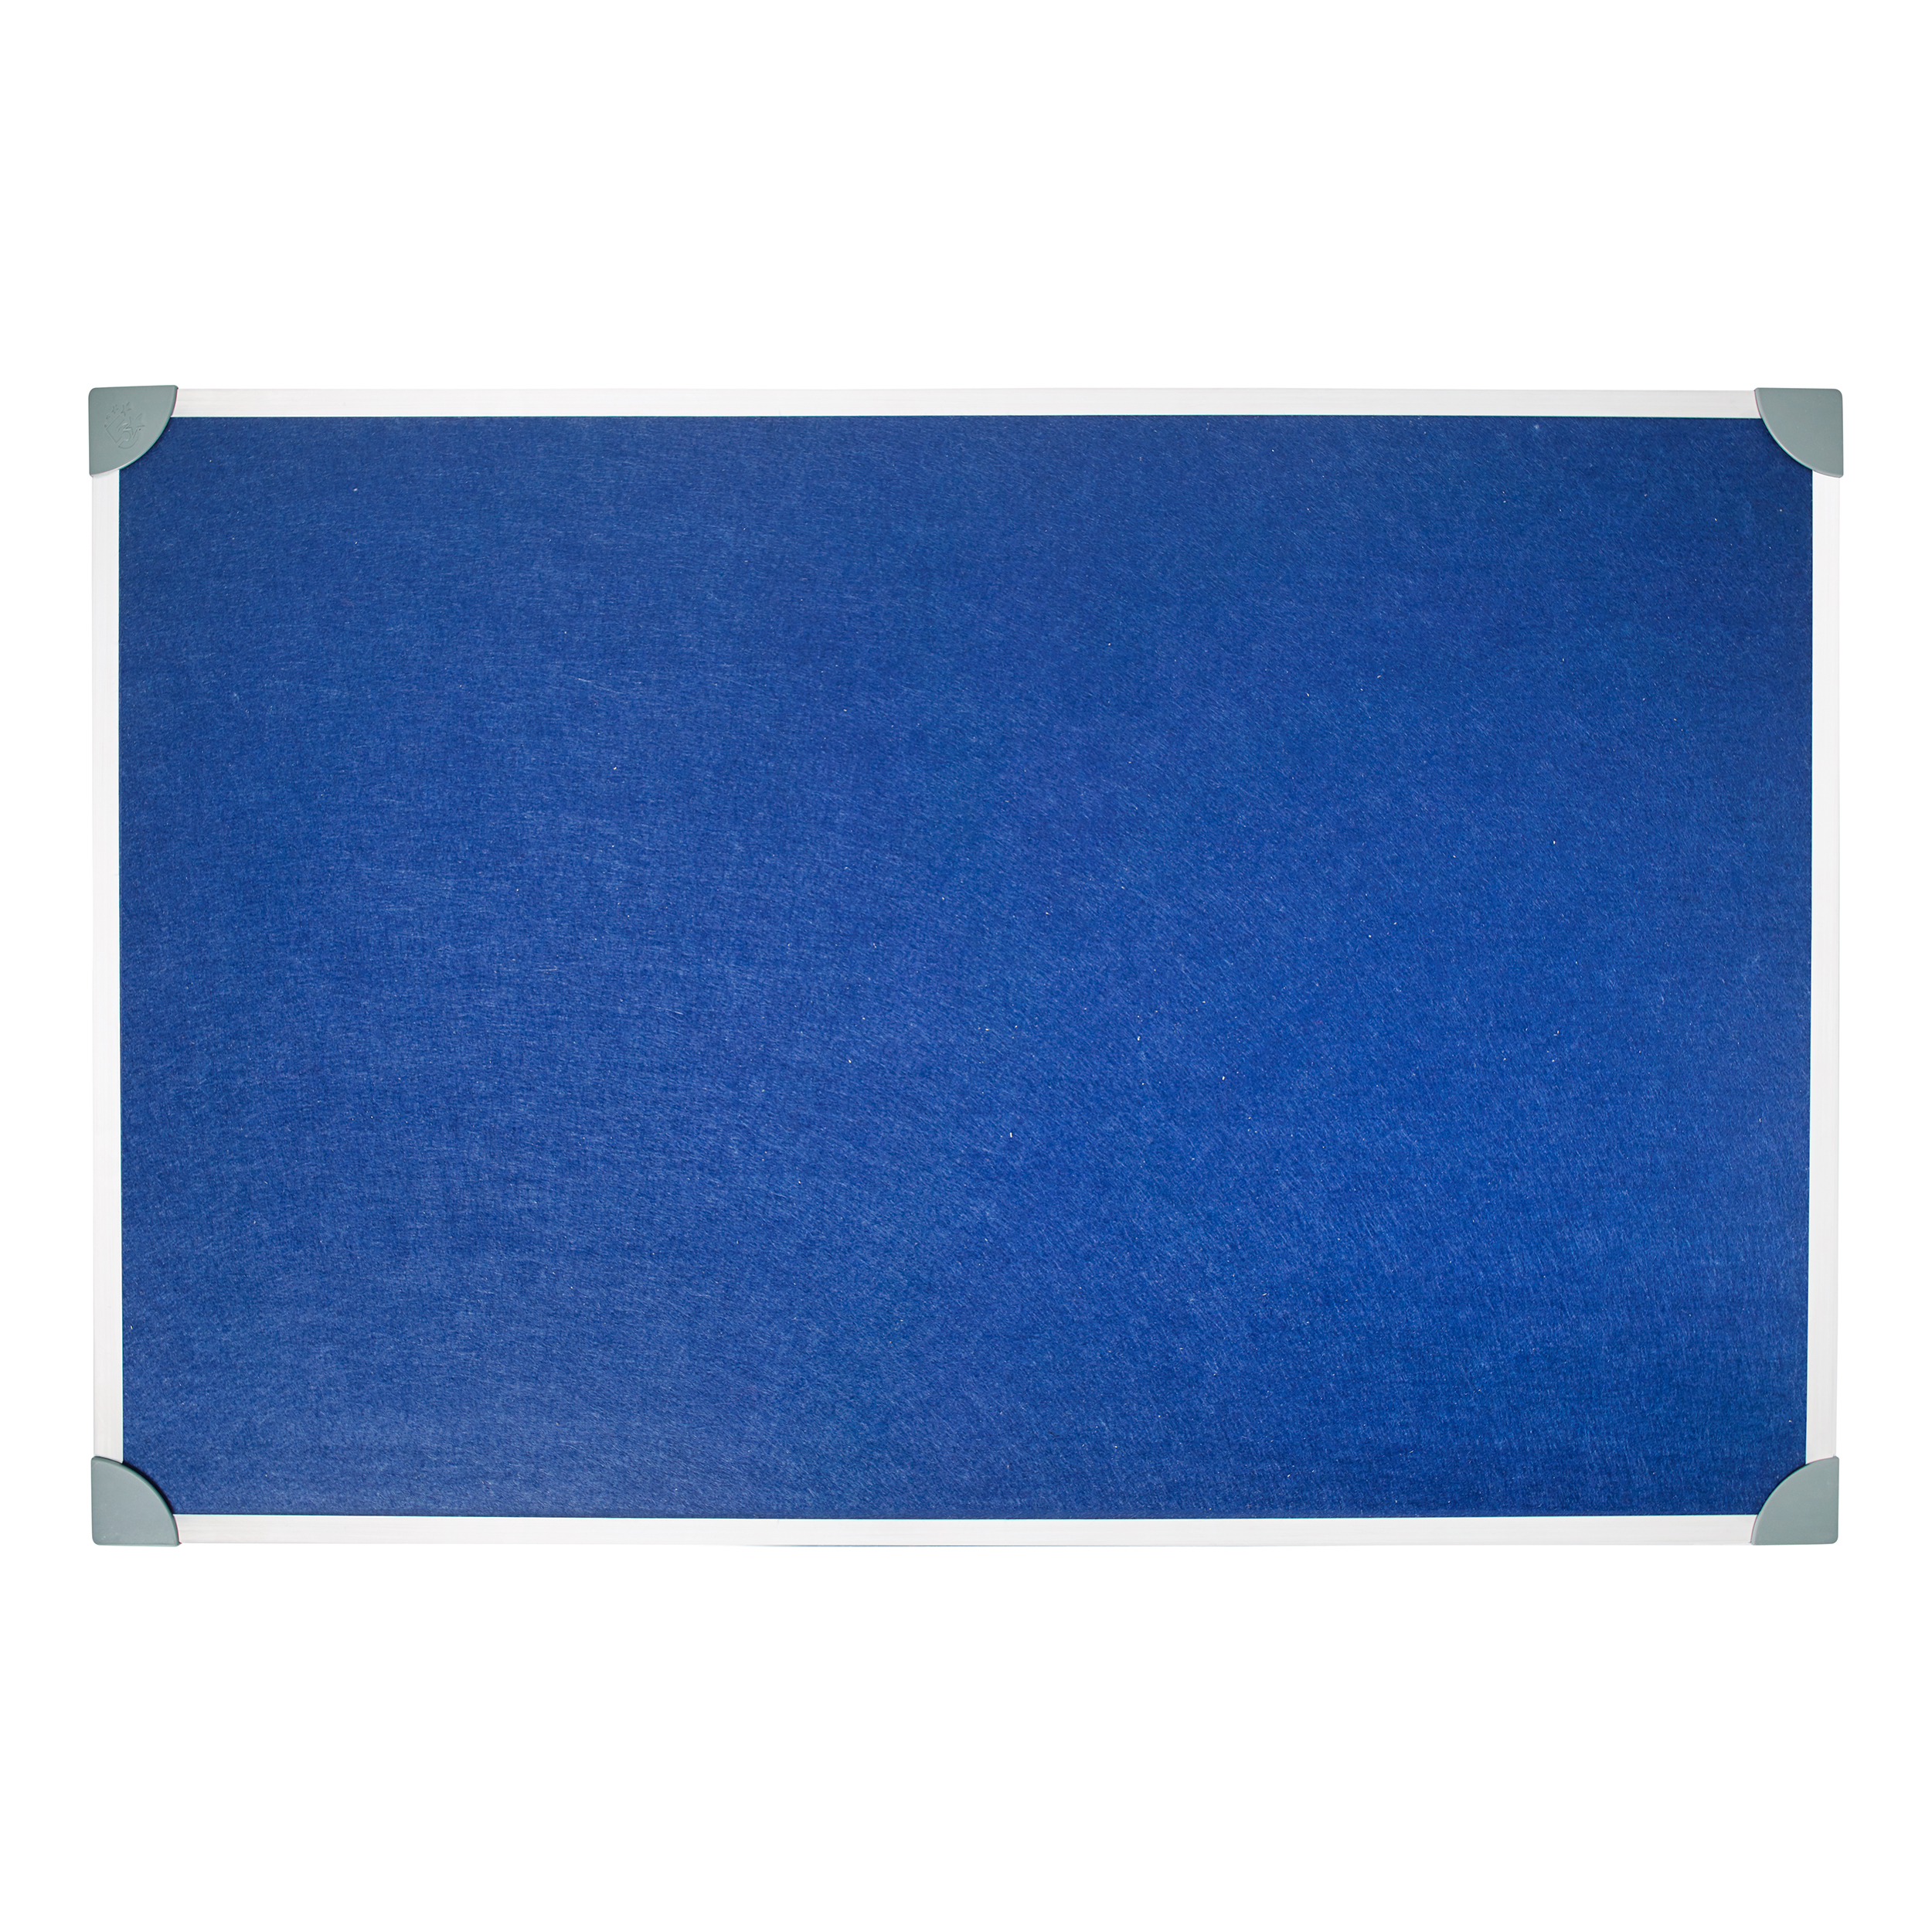 5 Star Office Felt Noticeboard with Fixings and Aluminium Trim W900xH600mm Blue